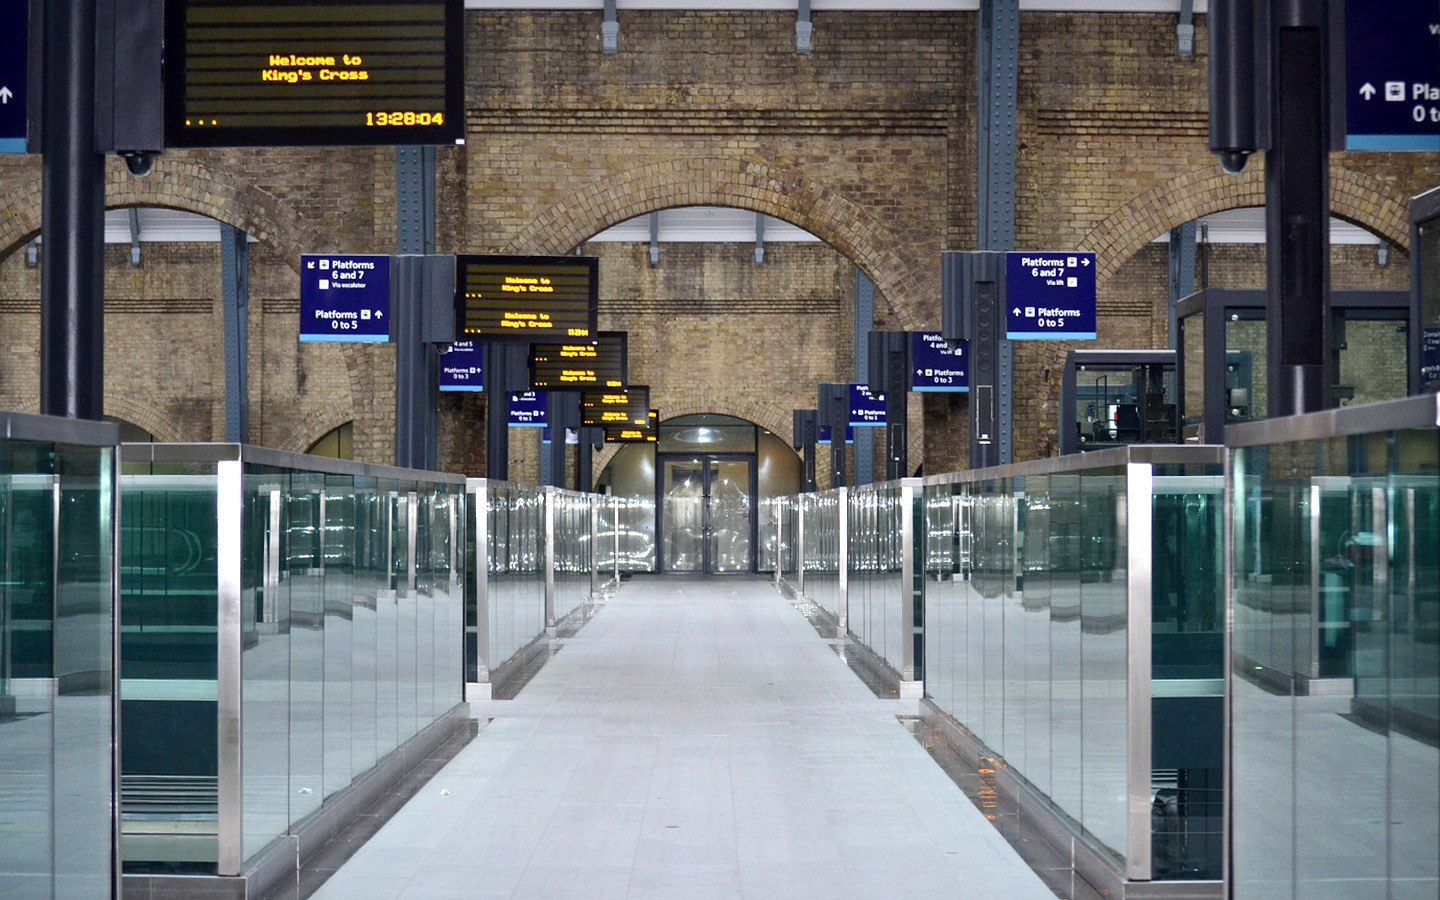 King's Cross Train station in London